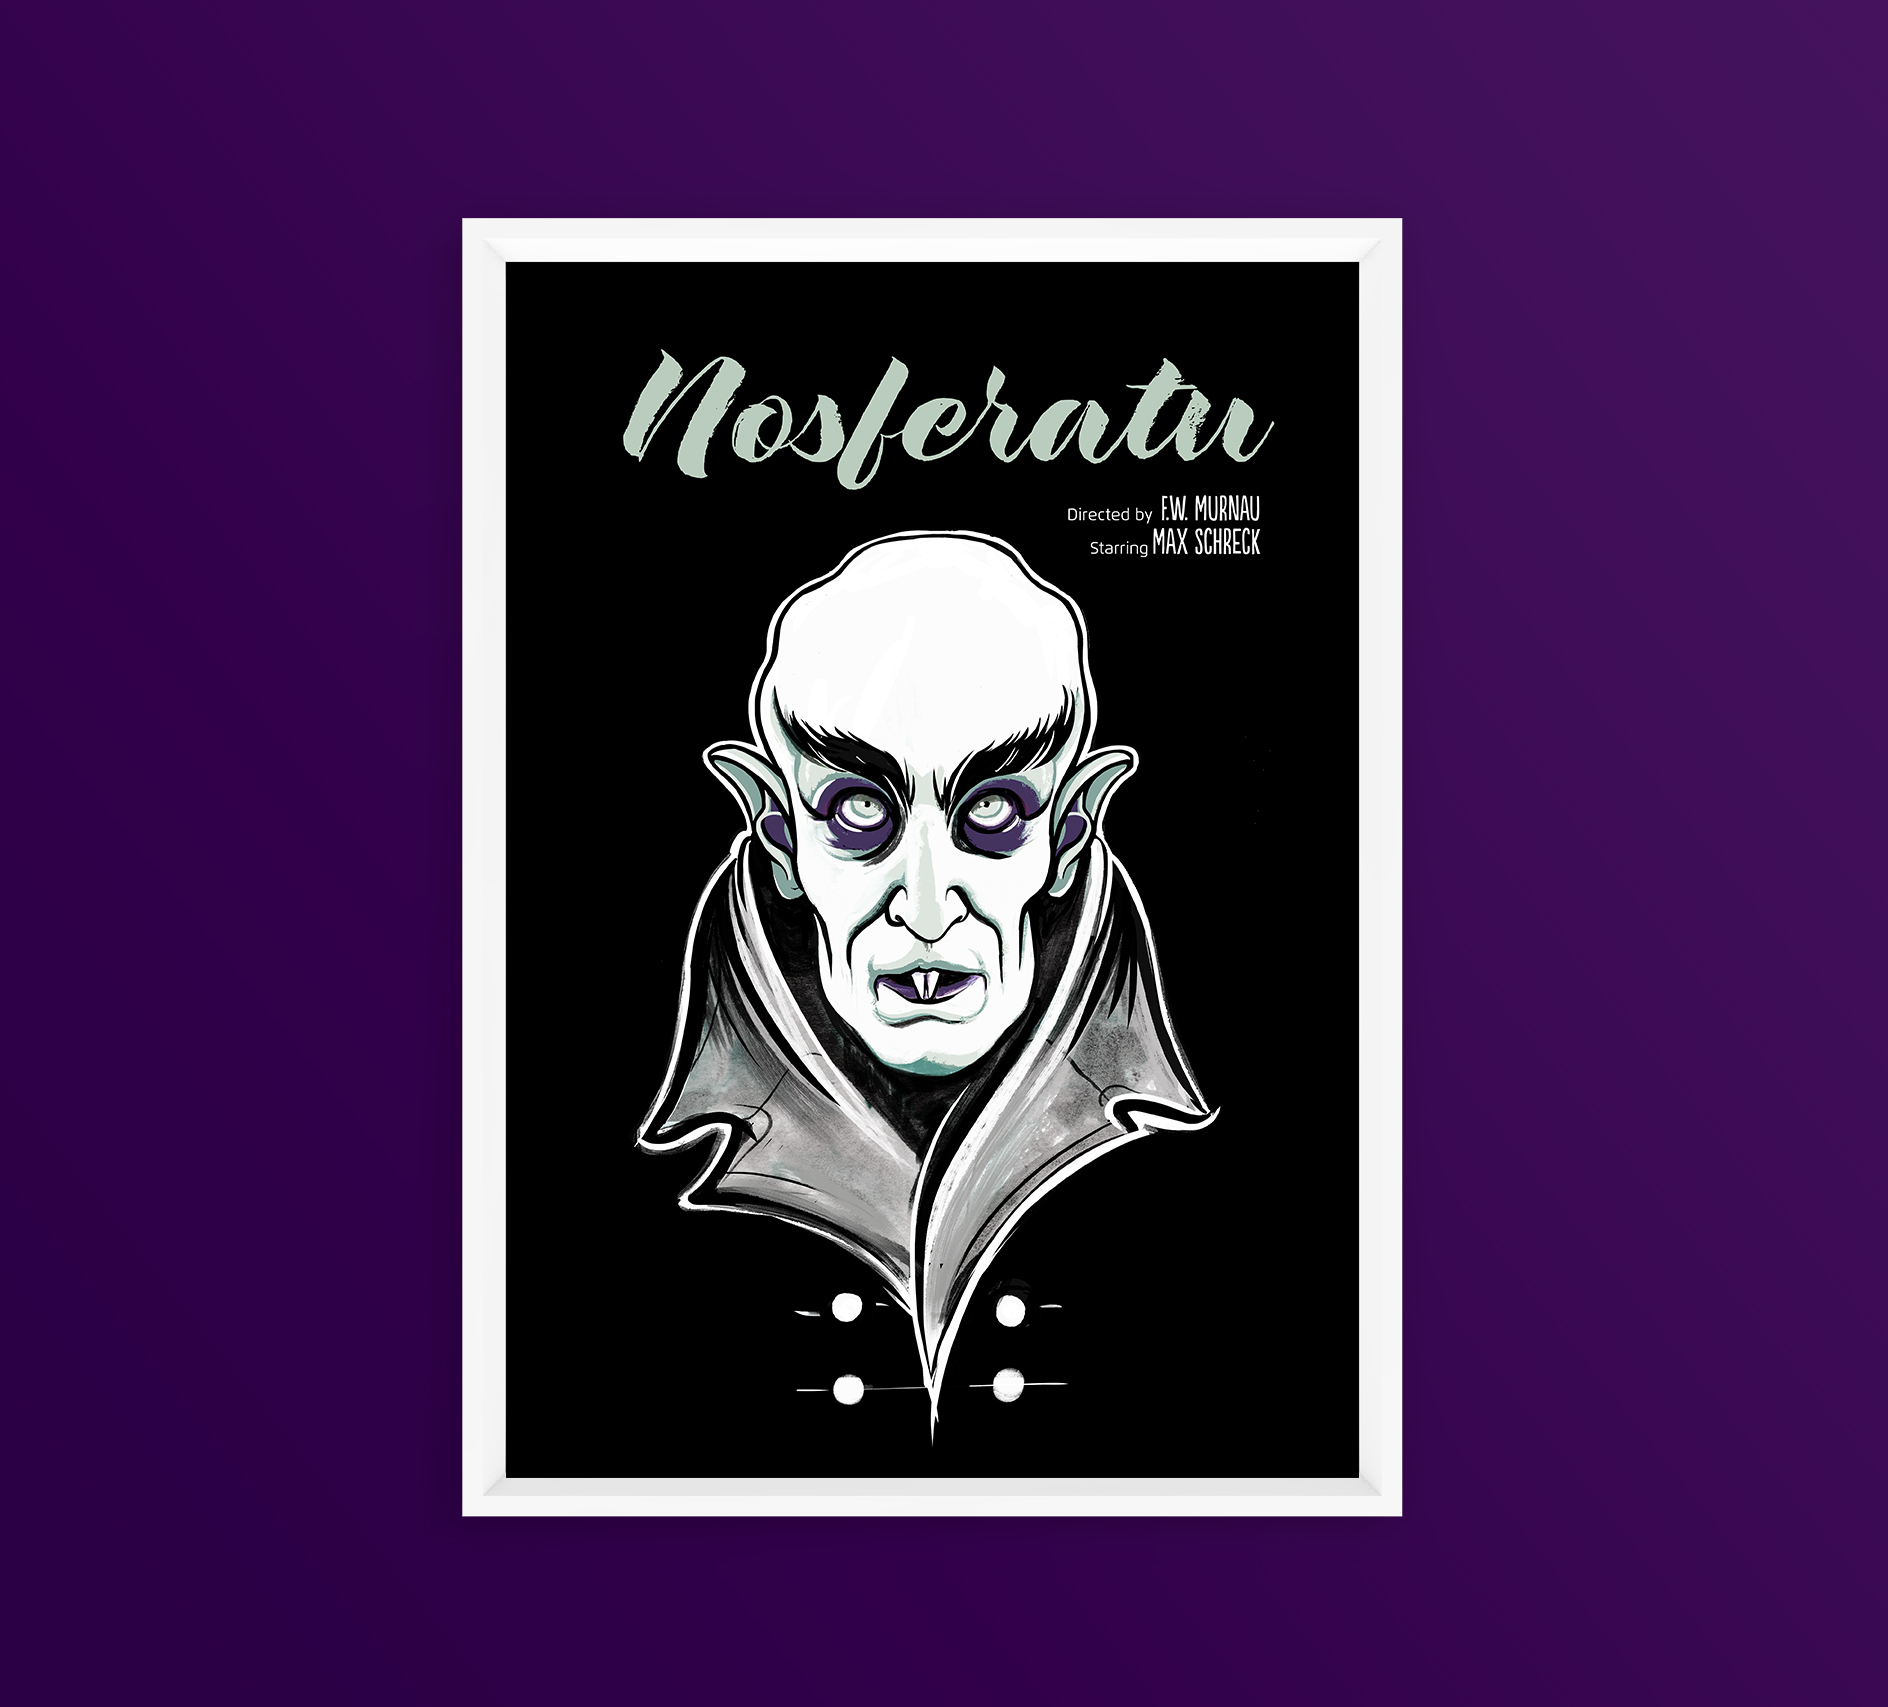 Nosferatu_Mermelada copy